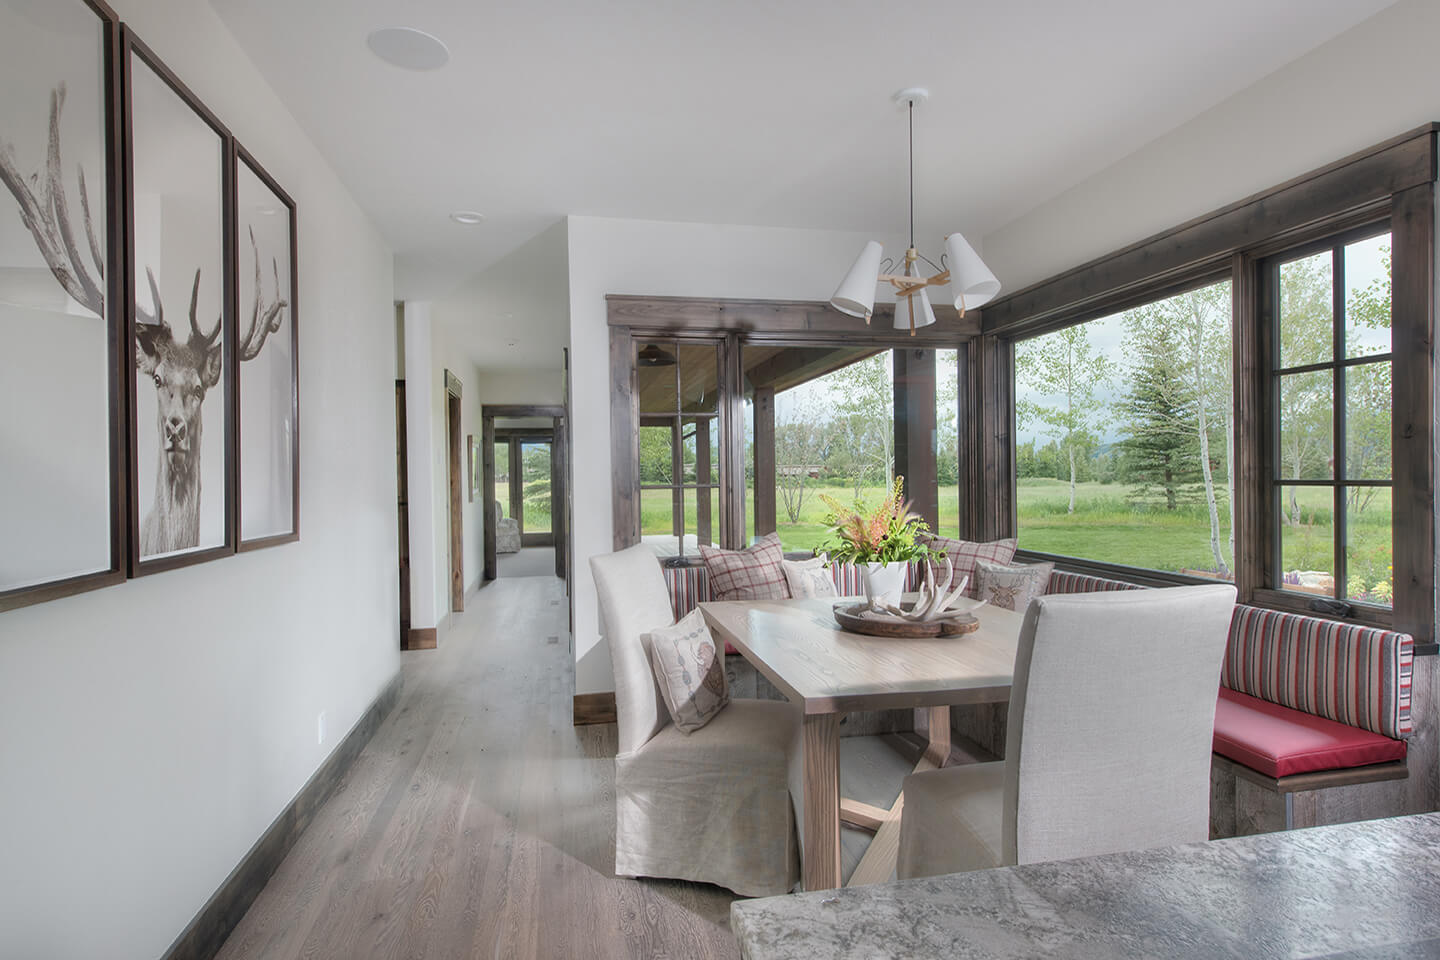 Calming space for this breakfast nook with a view